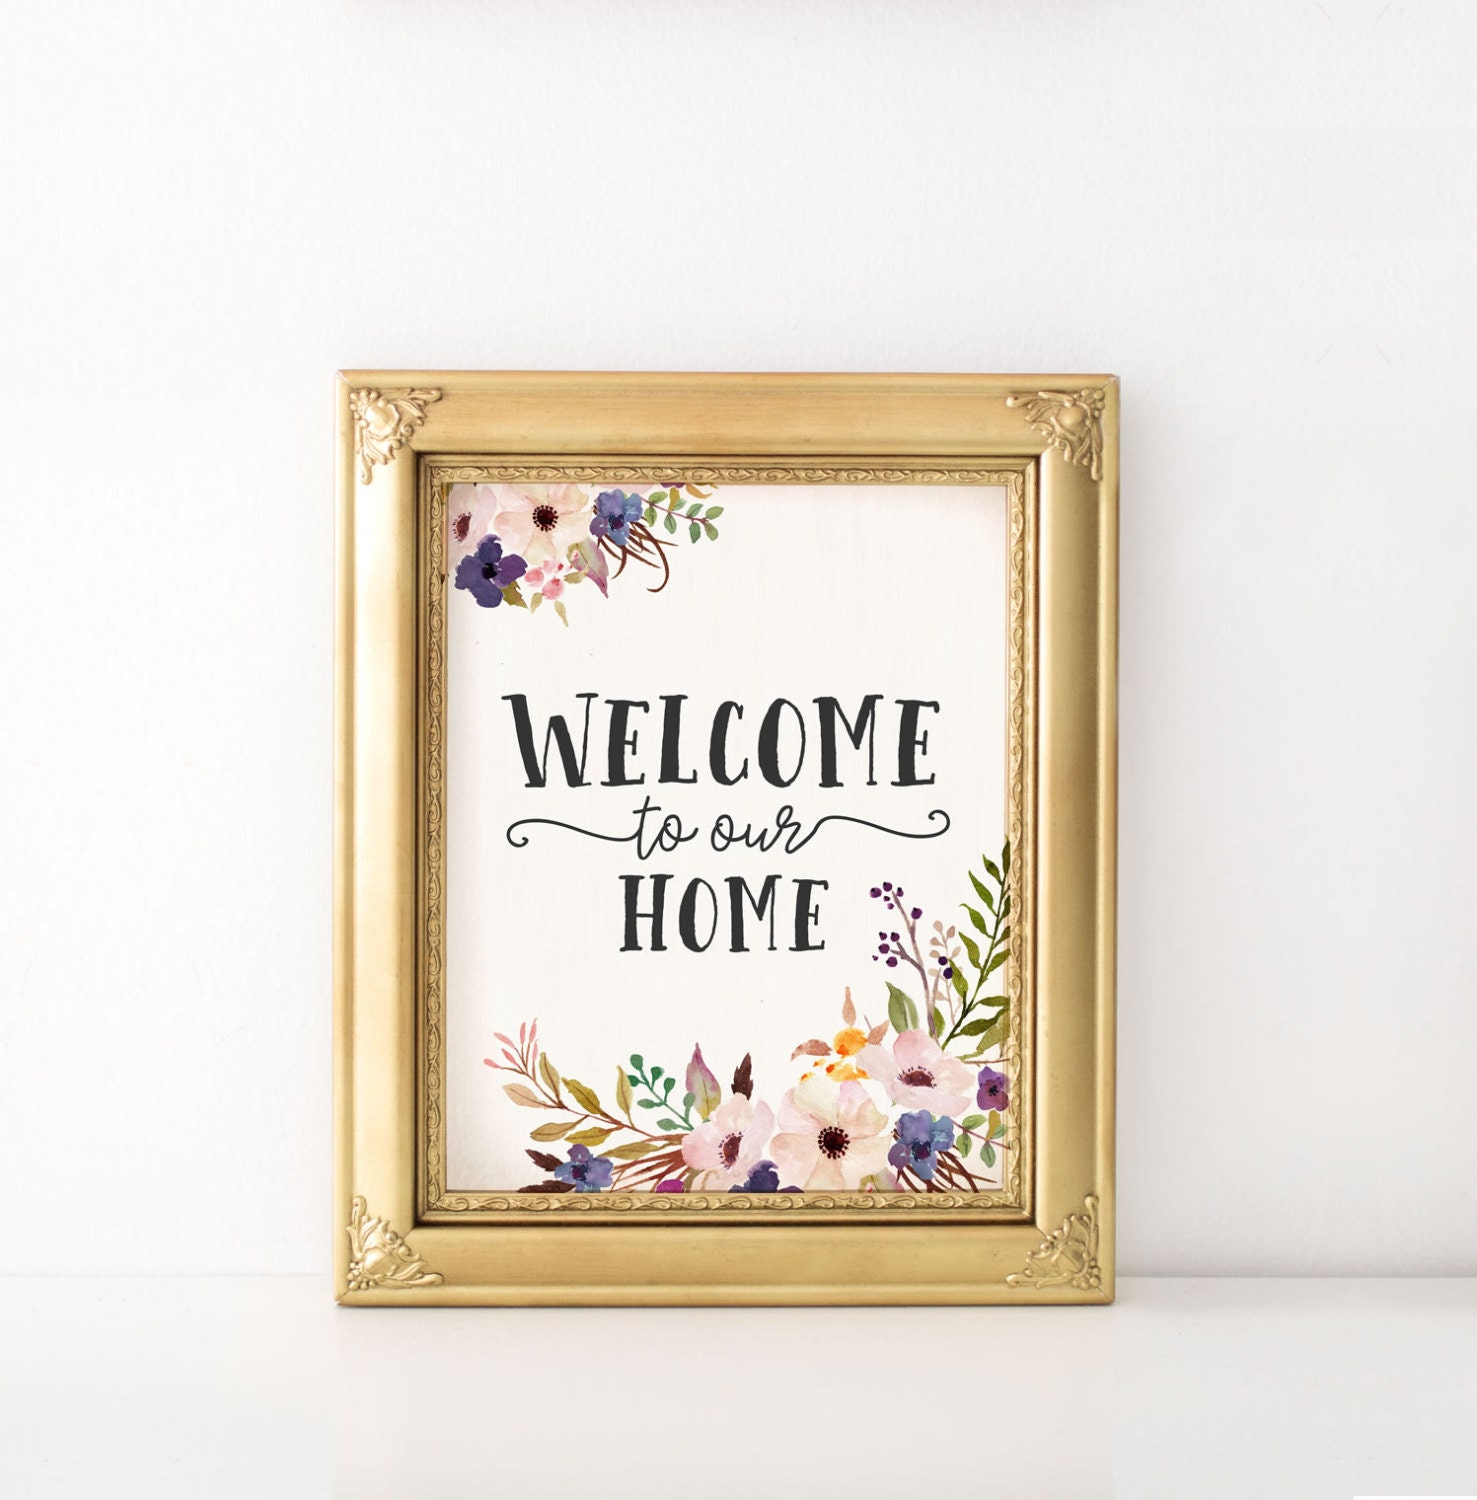 Welcome To Our Home: Welcome To Our Home Print Welcome Sign Art By KiwiNberries